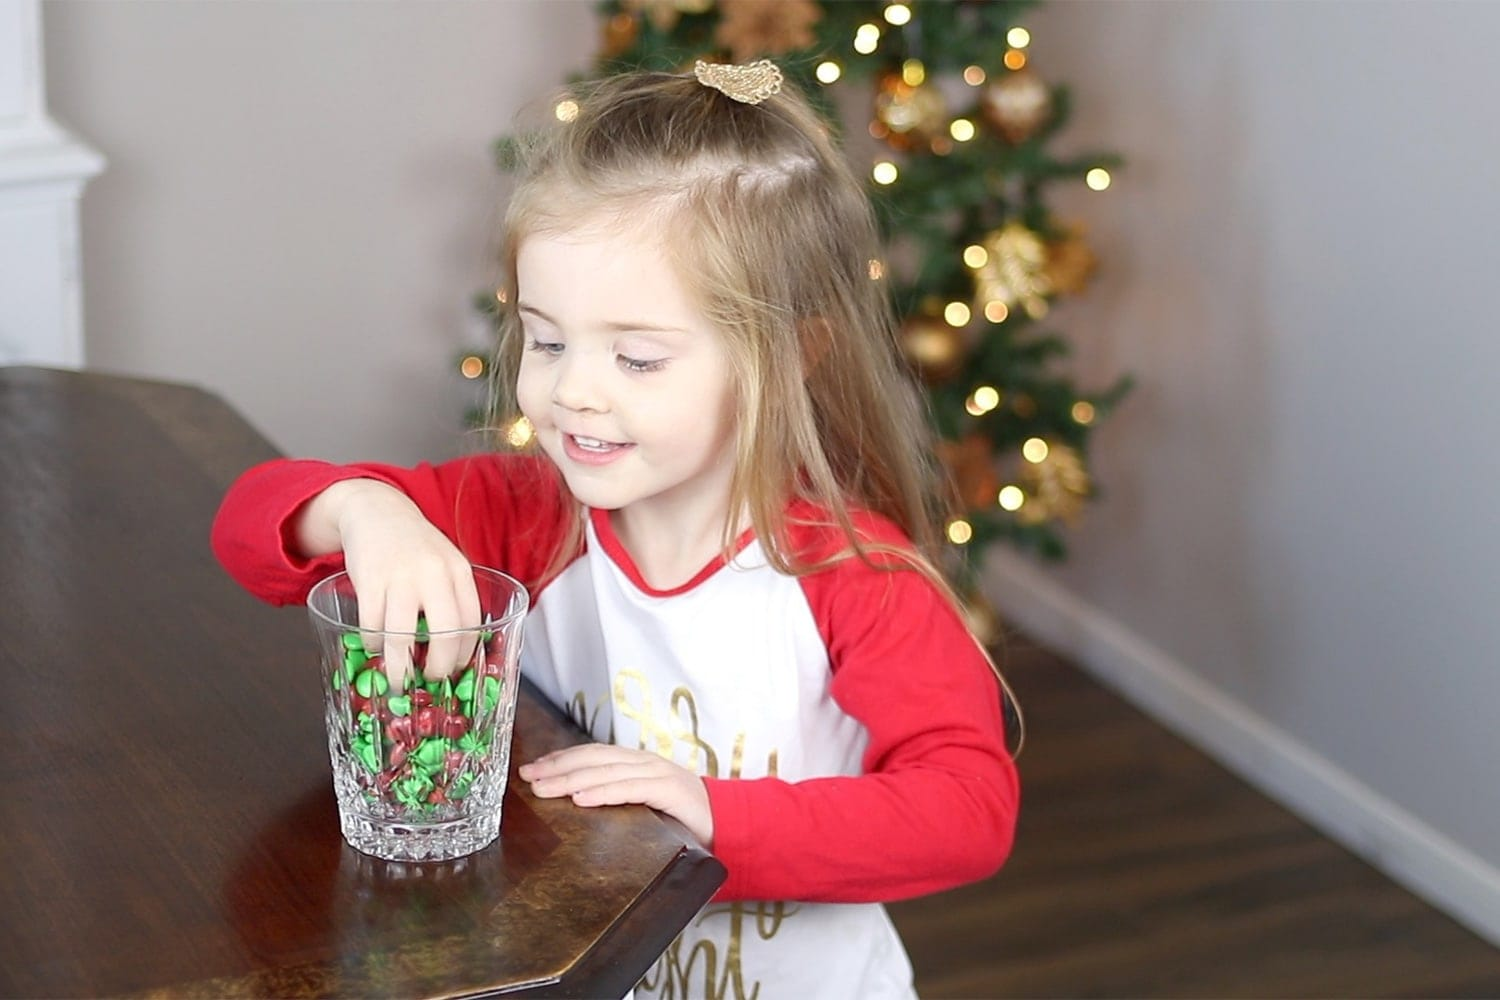 kid sneaking candy - holiday bloopers